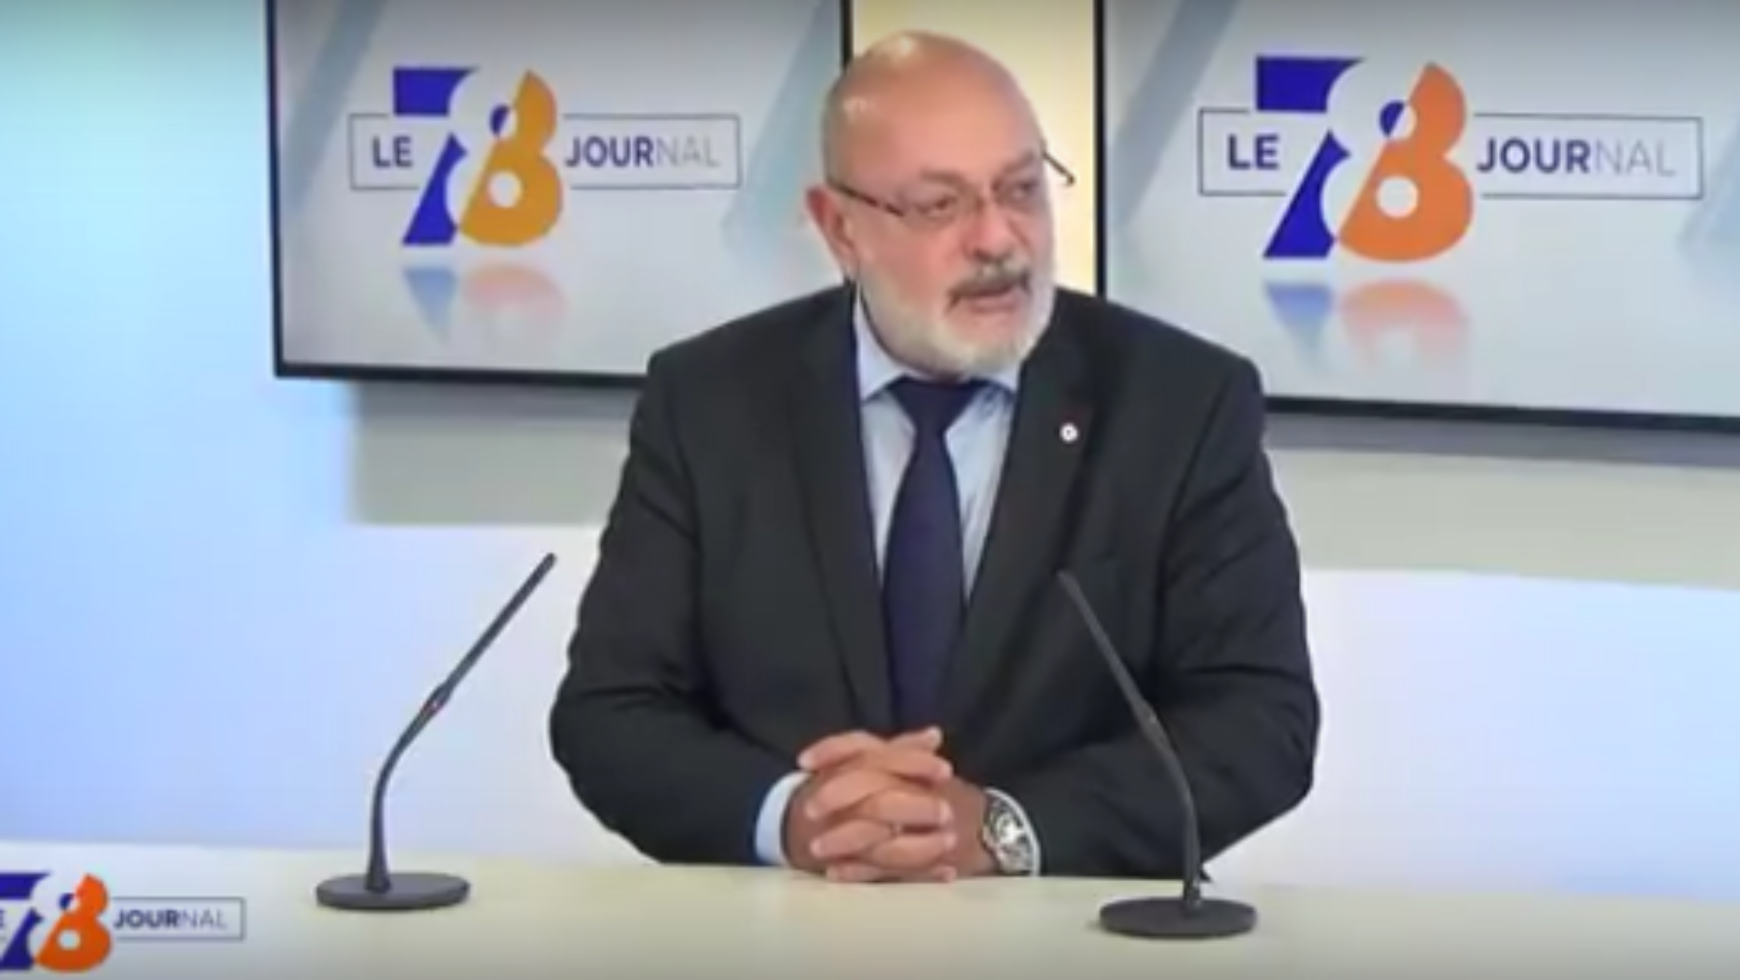 Bruno Millienne invité du journal de TV78